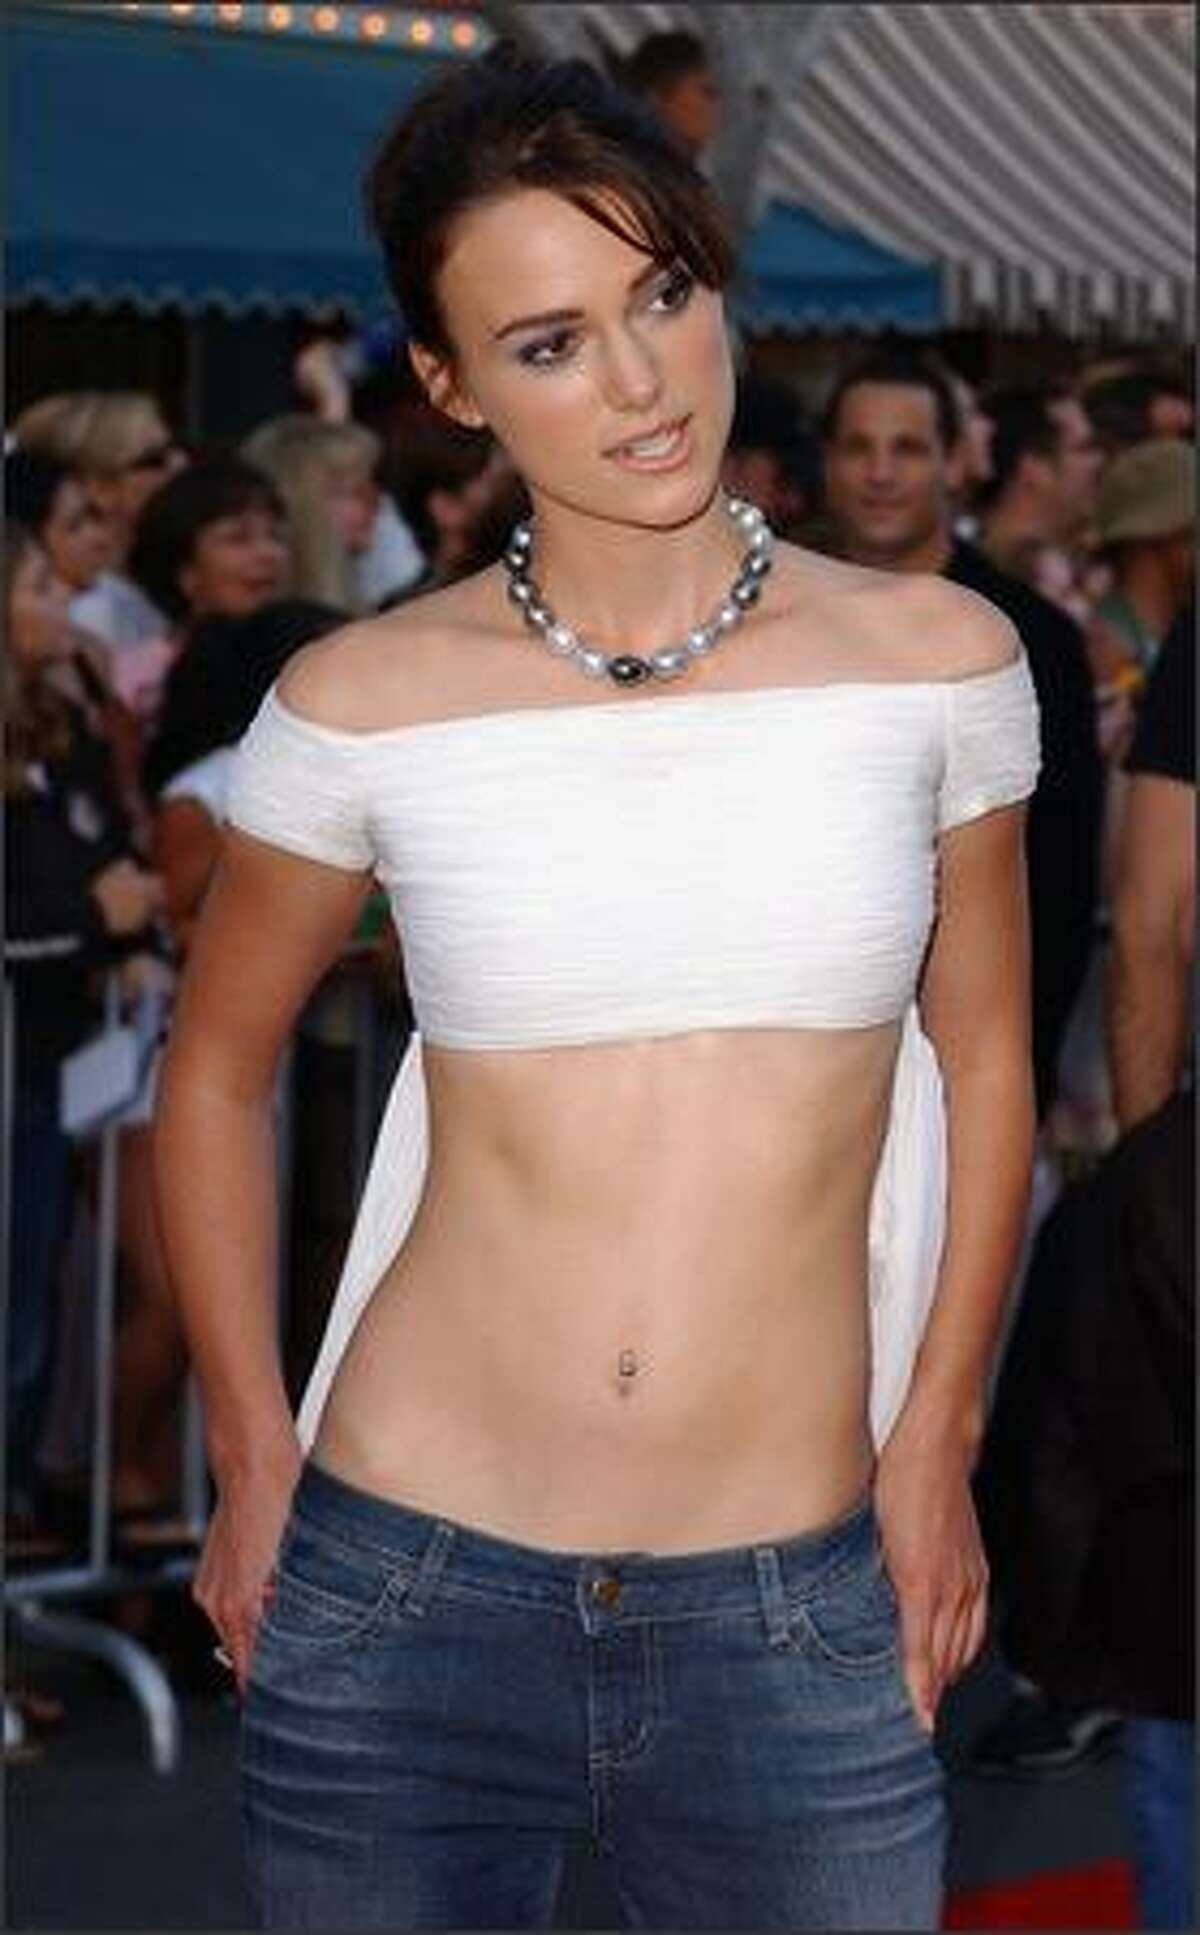 """Actress Keira Knightley arrives at the World Premiere of """"Pirates of the Caribbean: The Curse of the Black Pearl"""" on June 28, 2003, at Disneyland in Anaheim, California. (Photo by Amanda Edwards/Getty Images)"""